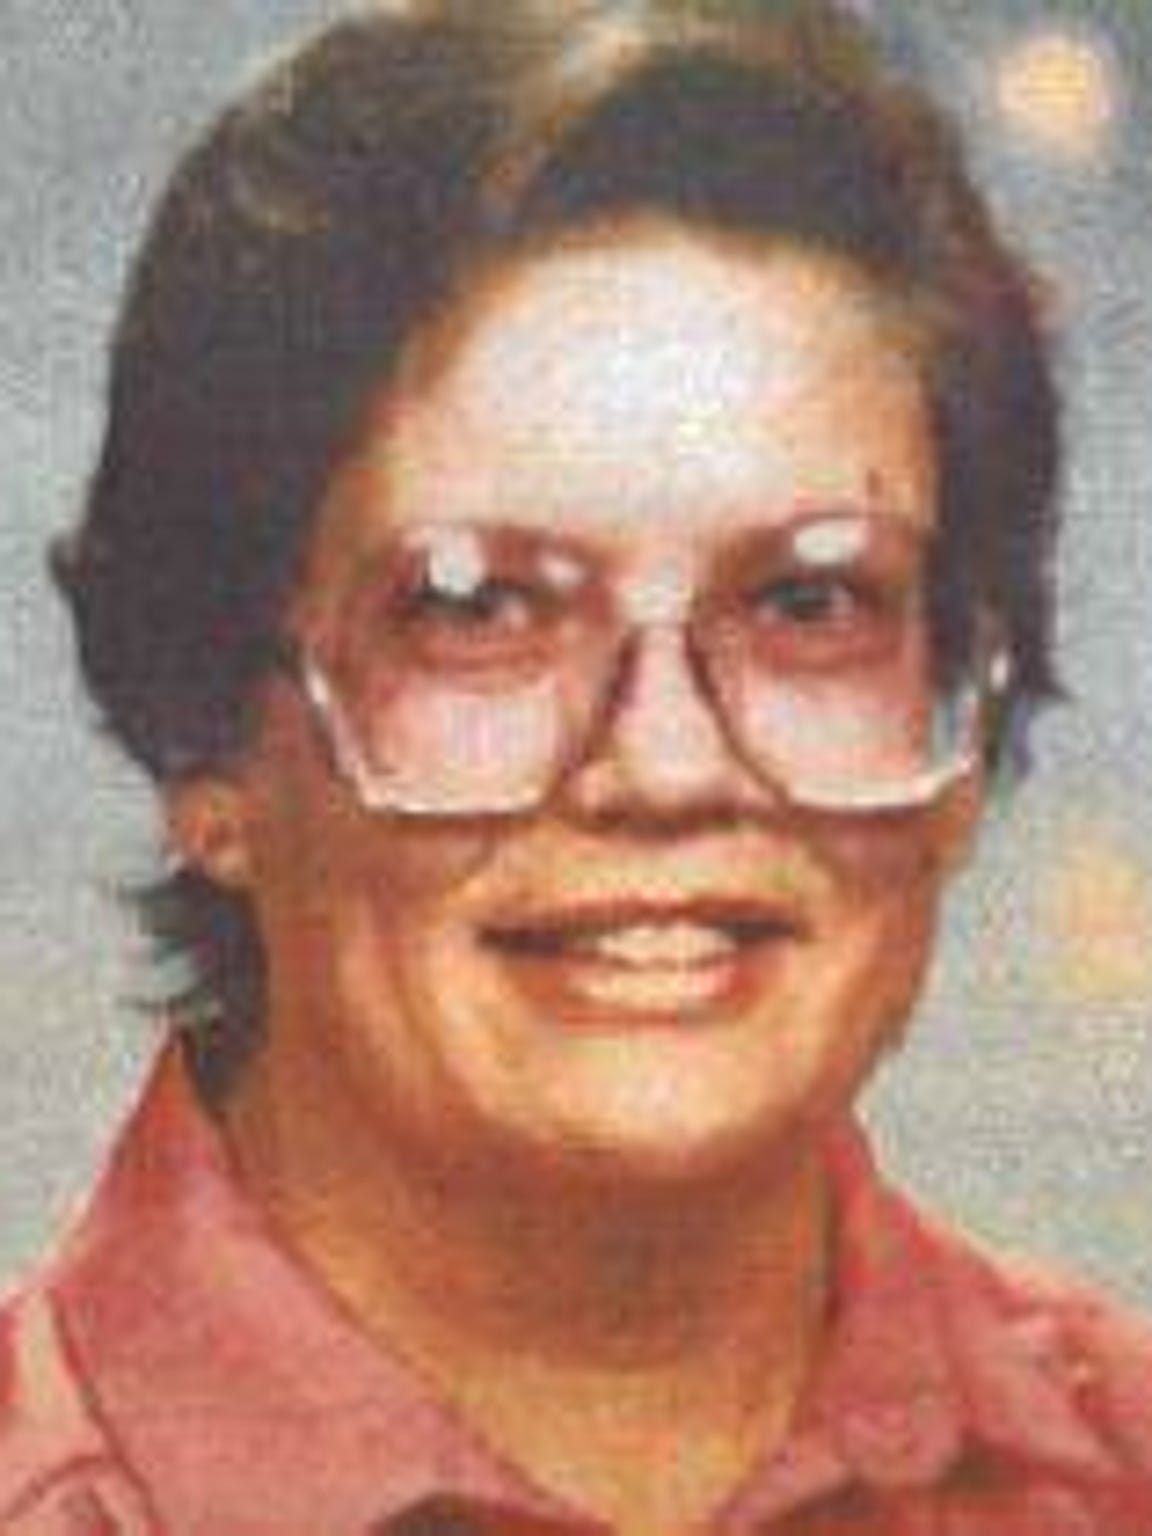 Peggy Cox was shot and killed on her 49th birthday on Feb. 1, 1991, while working the night shift at a Franklin Hardee's.